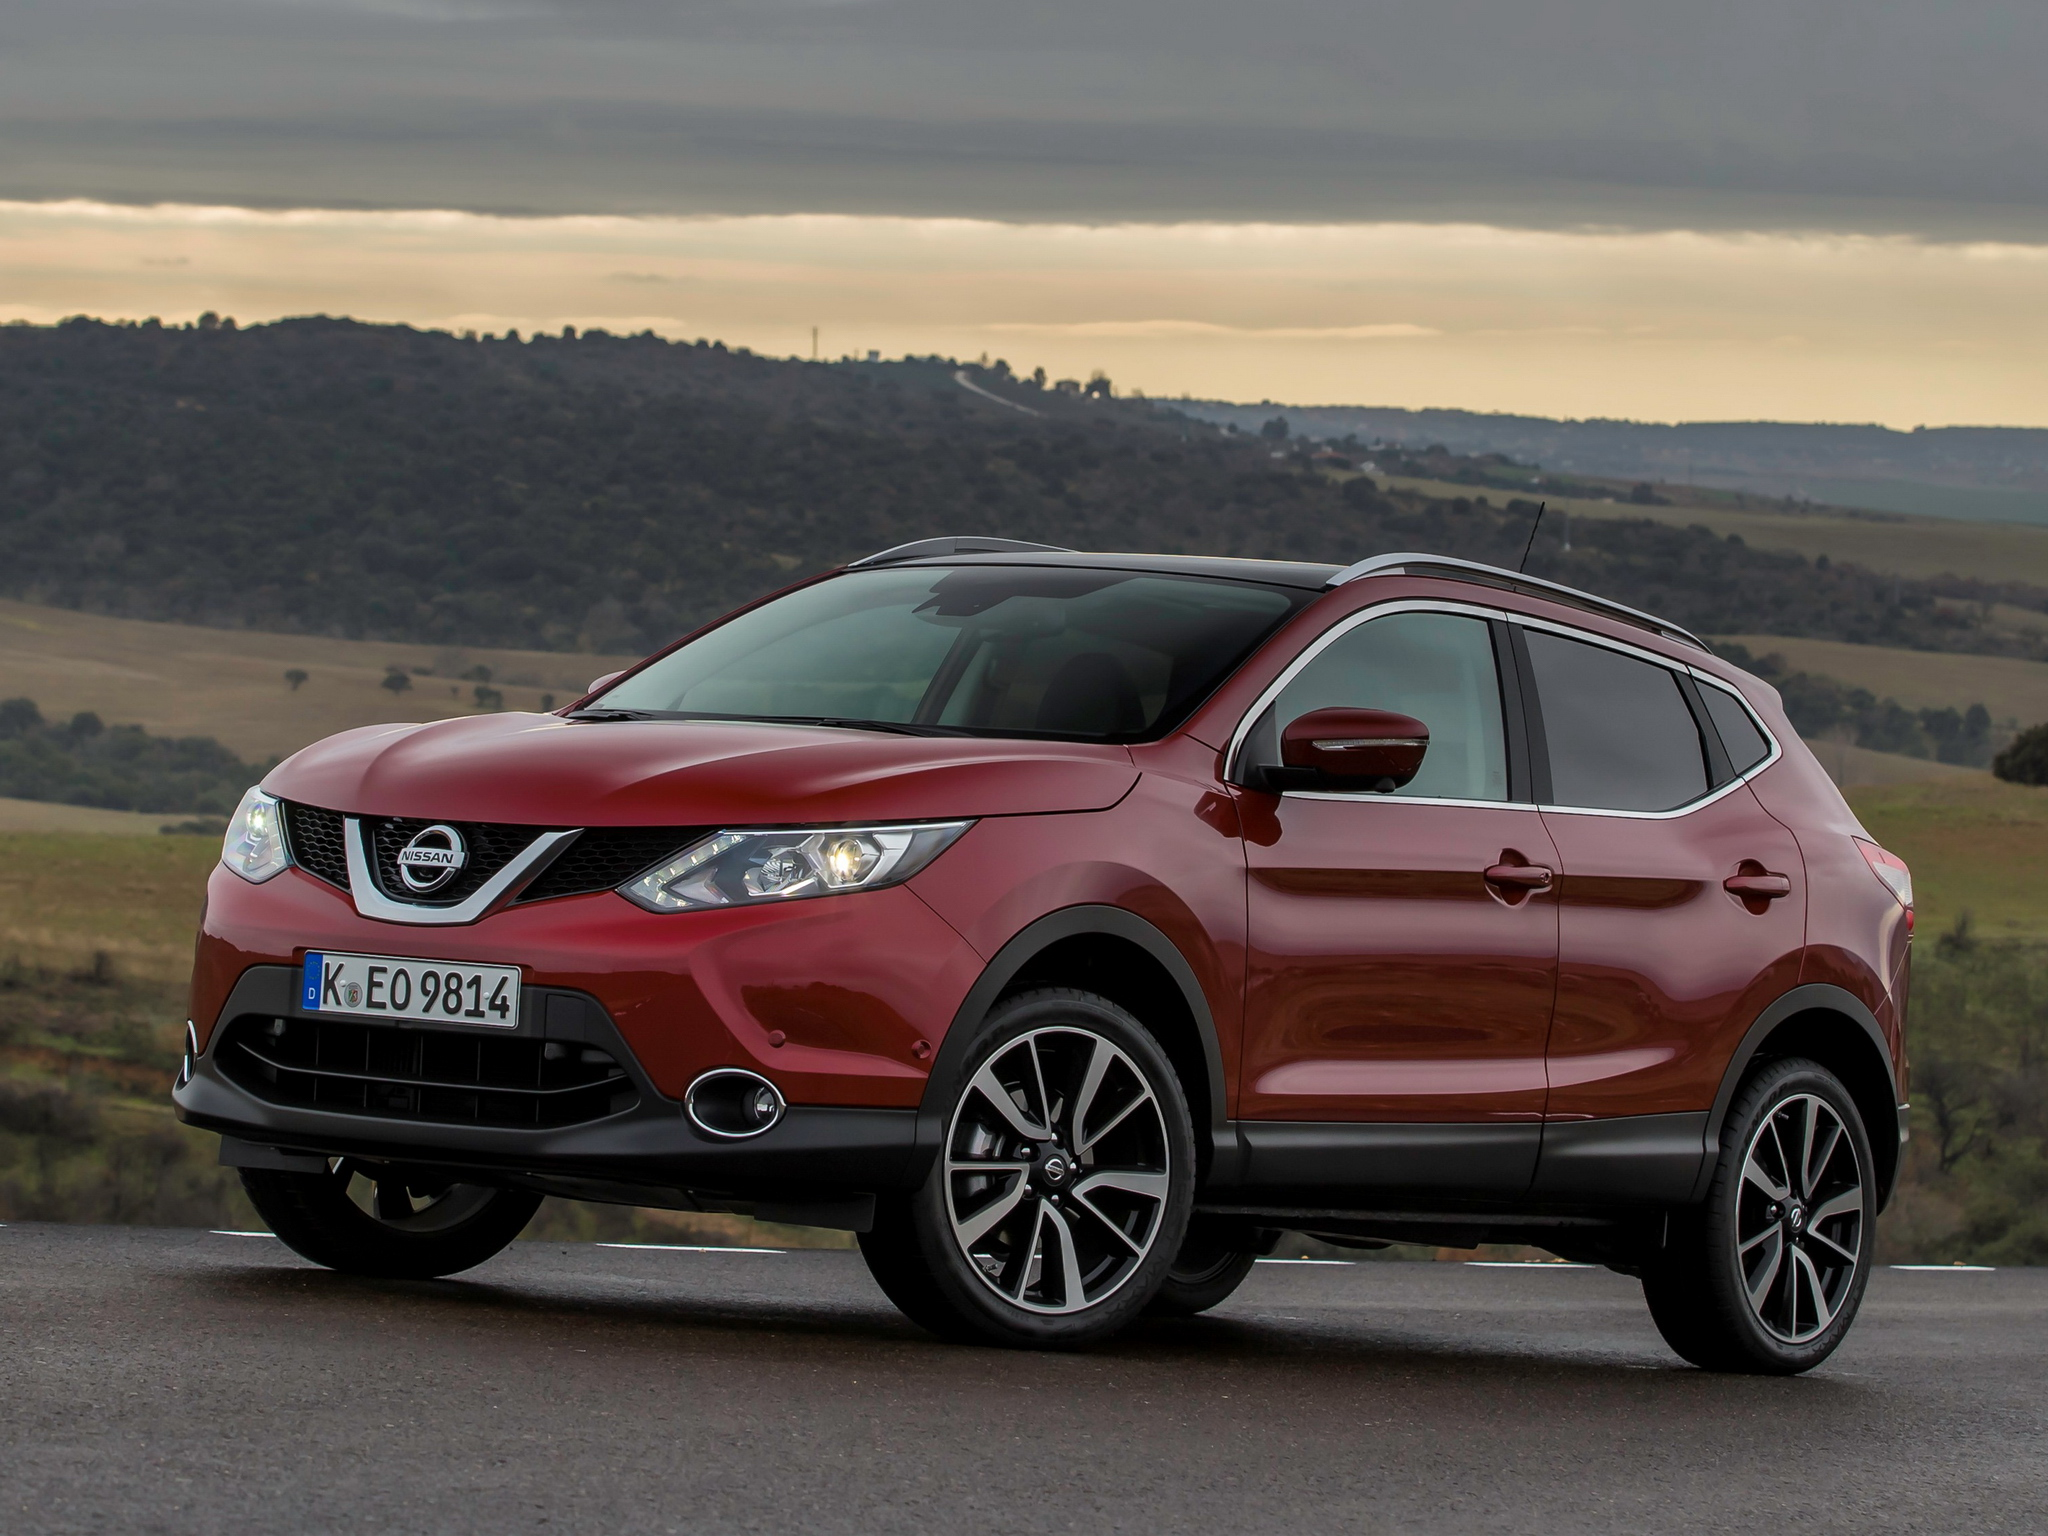 murano nissan conceptcarz crossover image and models news information com suv